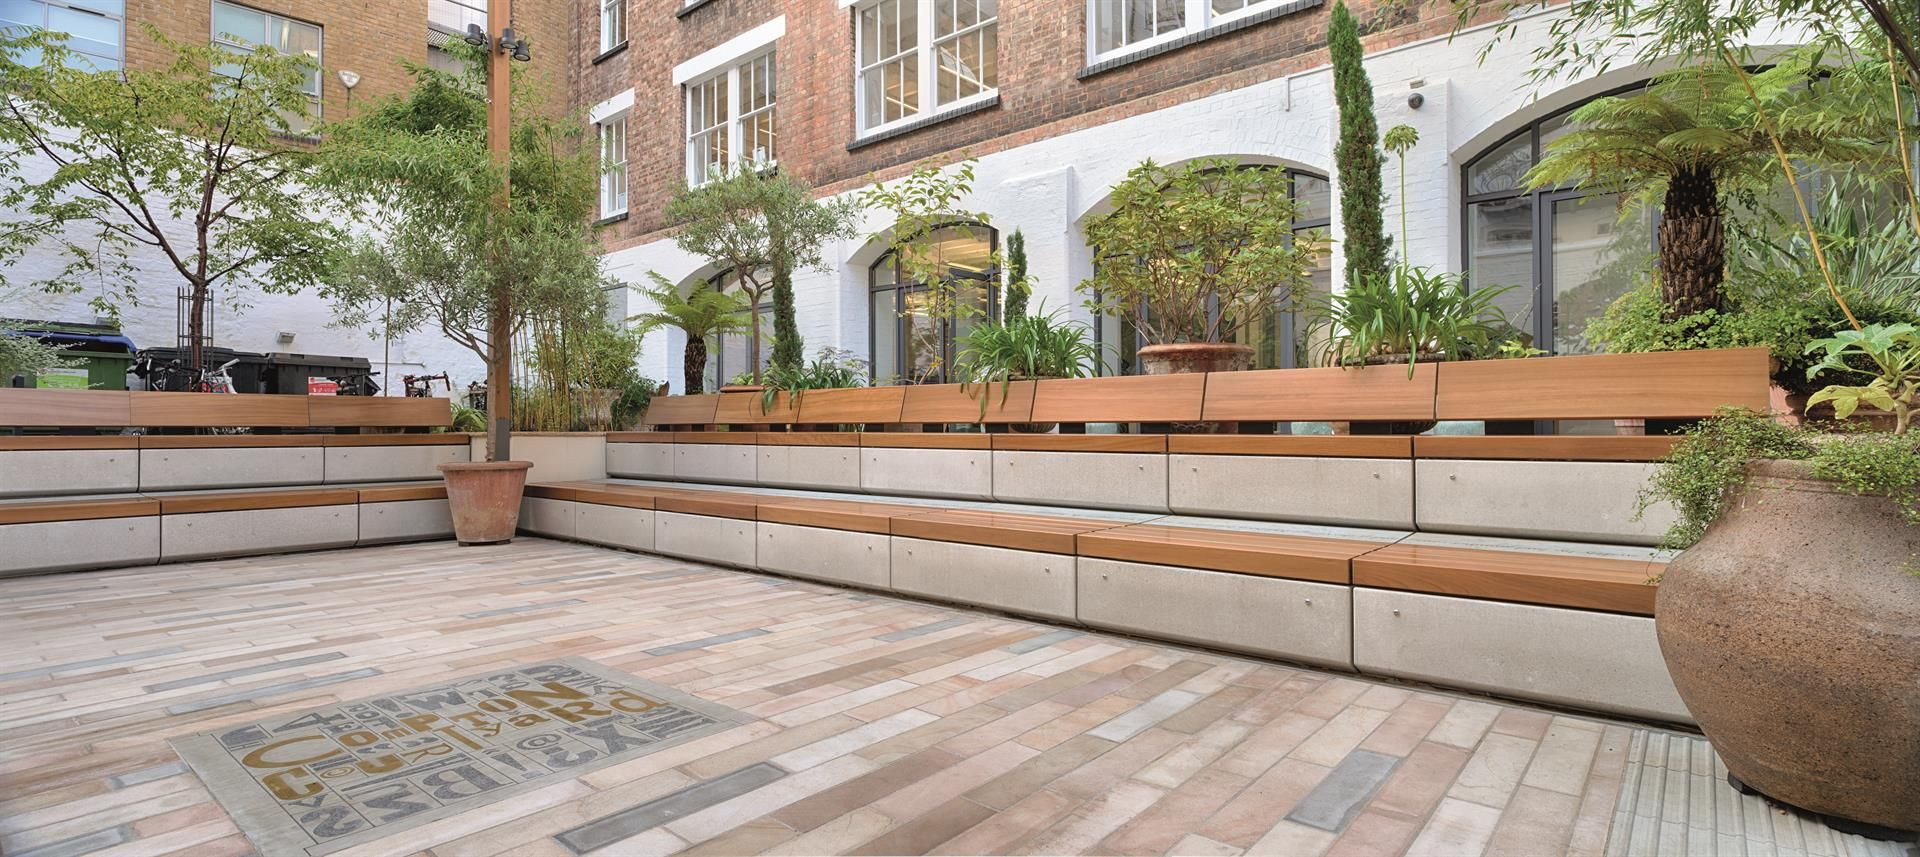 Marshalls Metrolinia Modular Concrete seating is part of our extensive range of street furniture. Please visit the website to learn more.